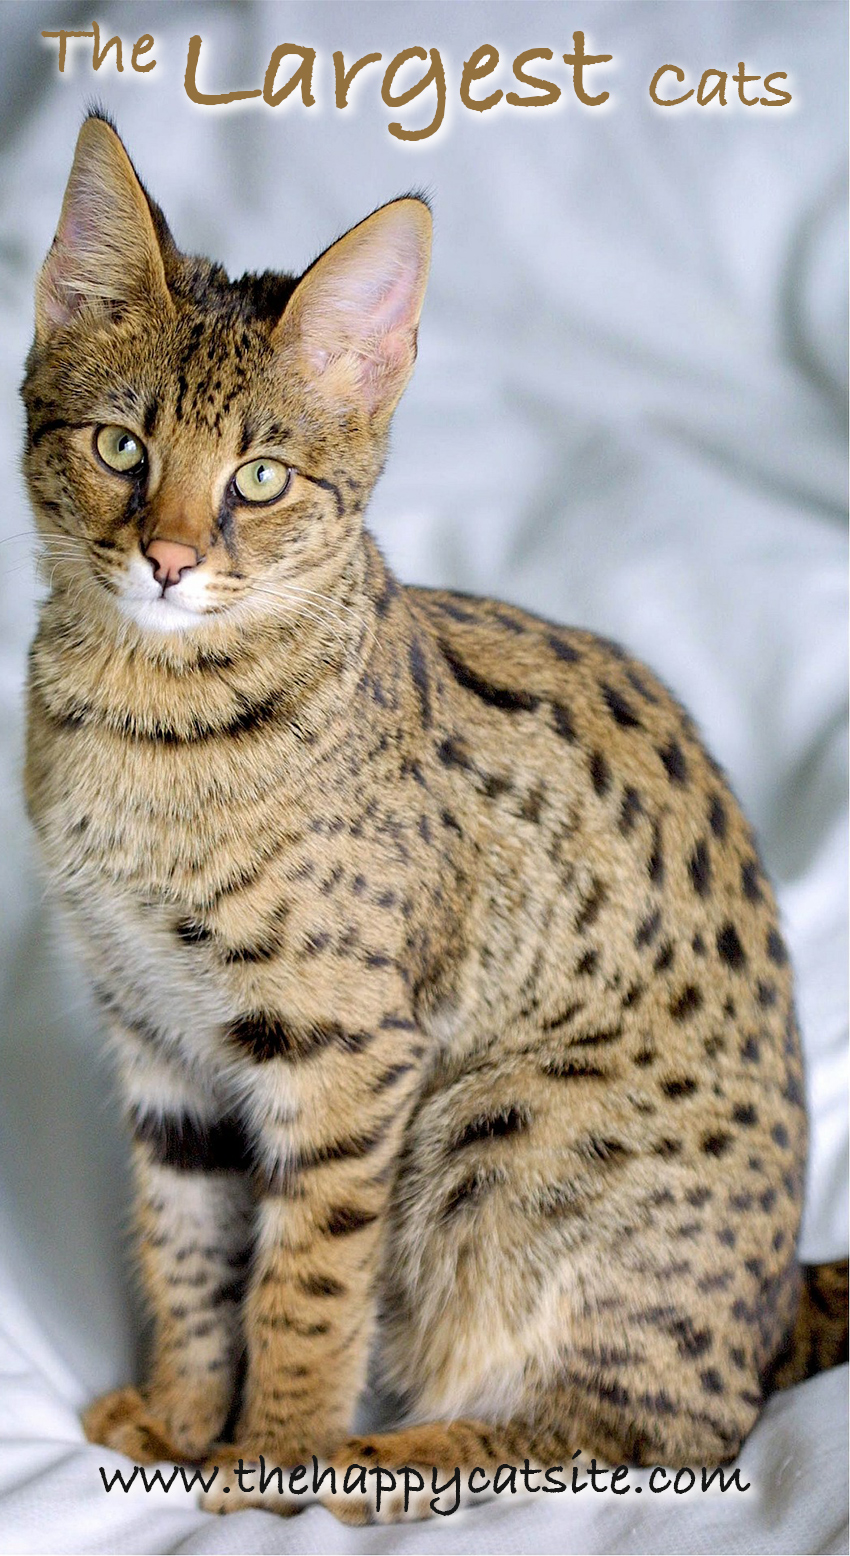 Savannah Cats are one of the largest domestic cats you can buy as a pet